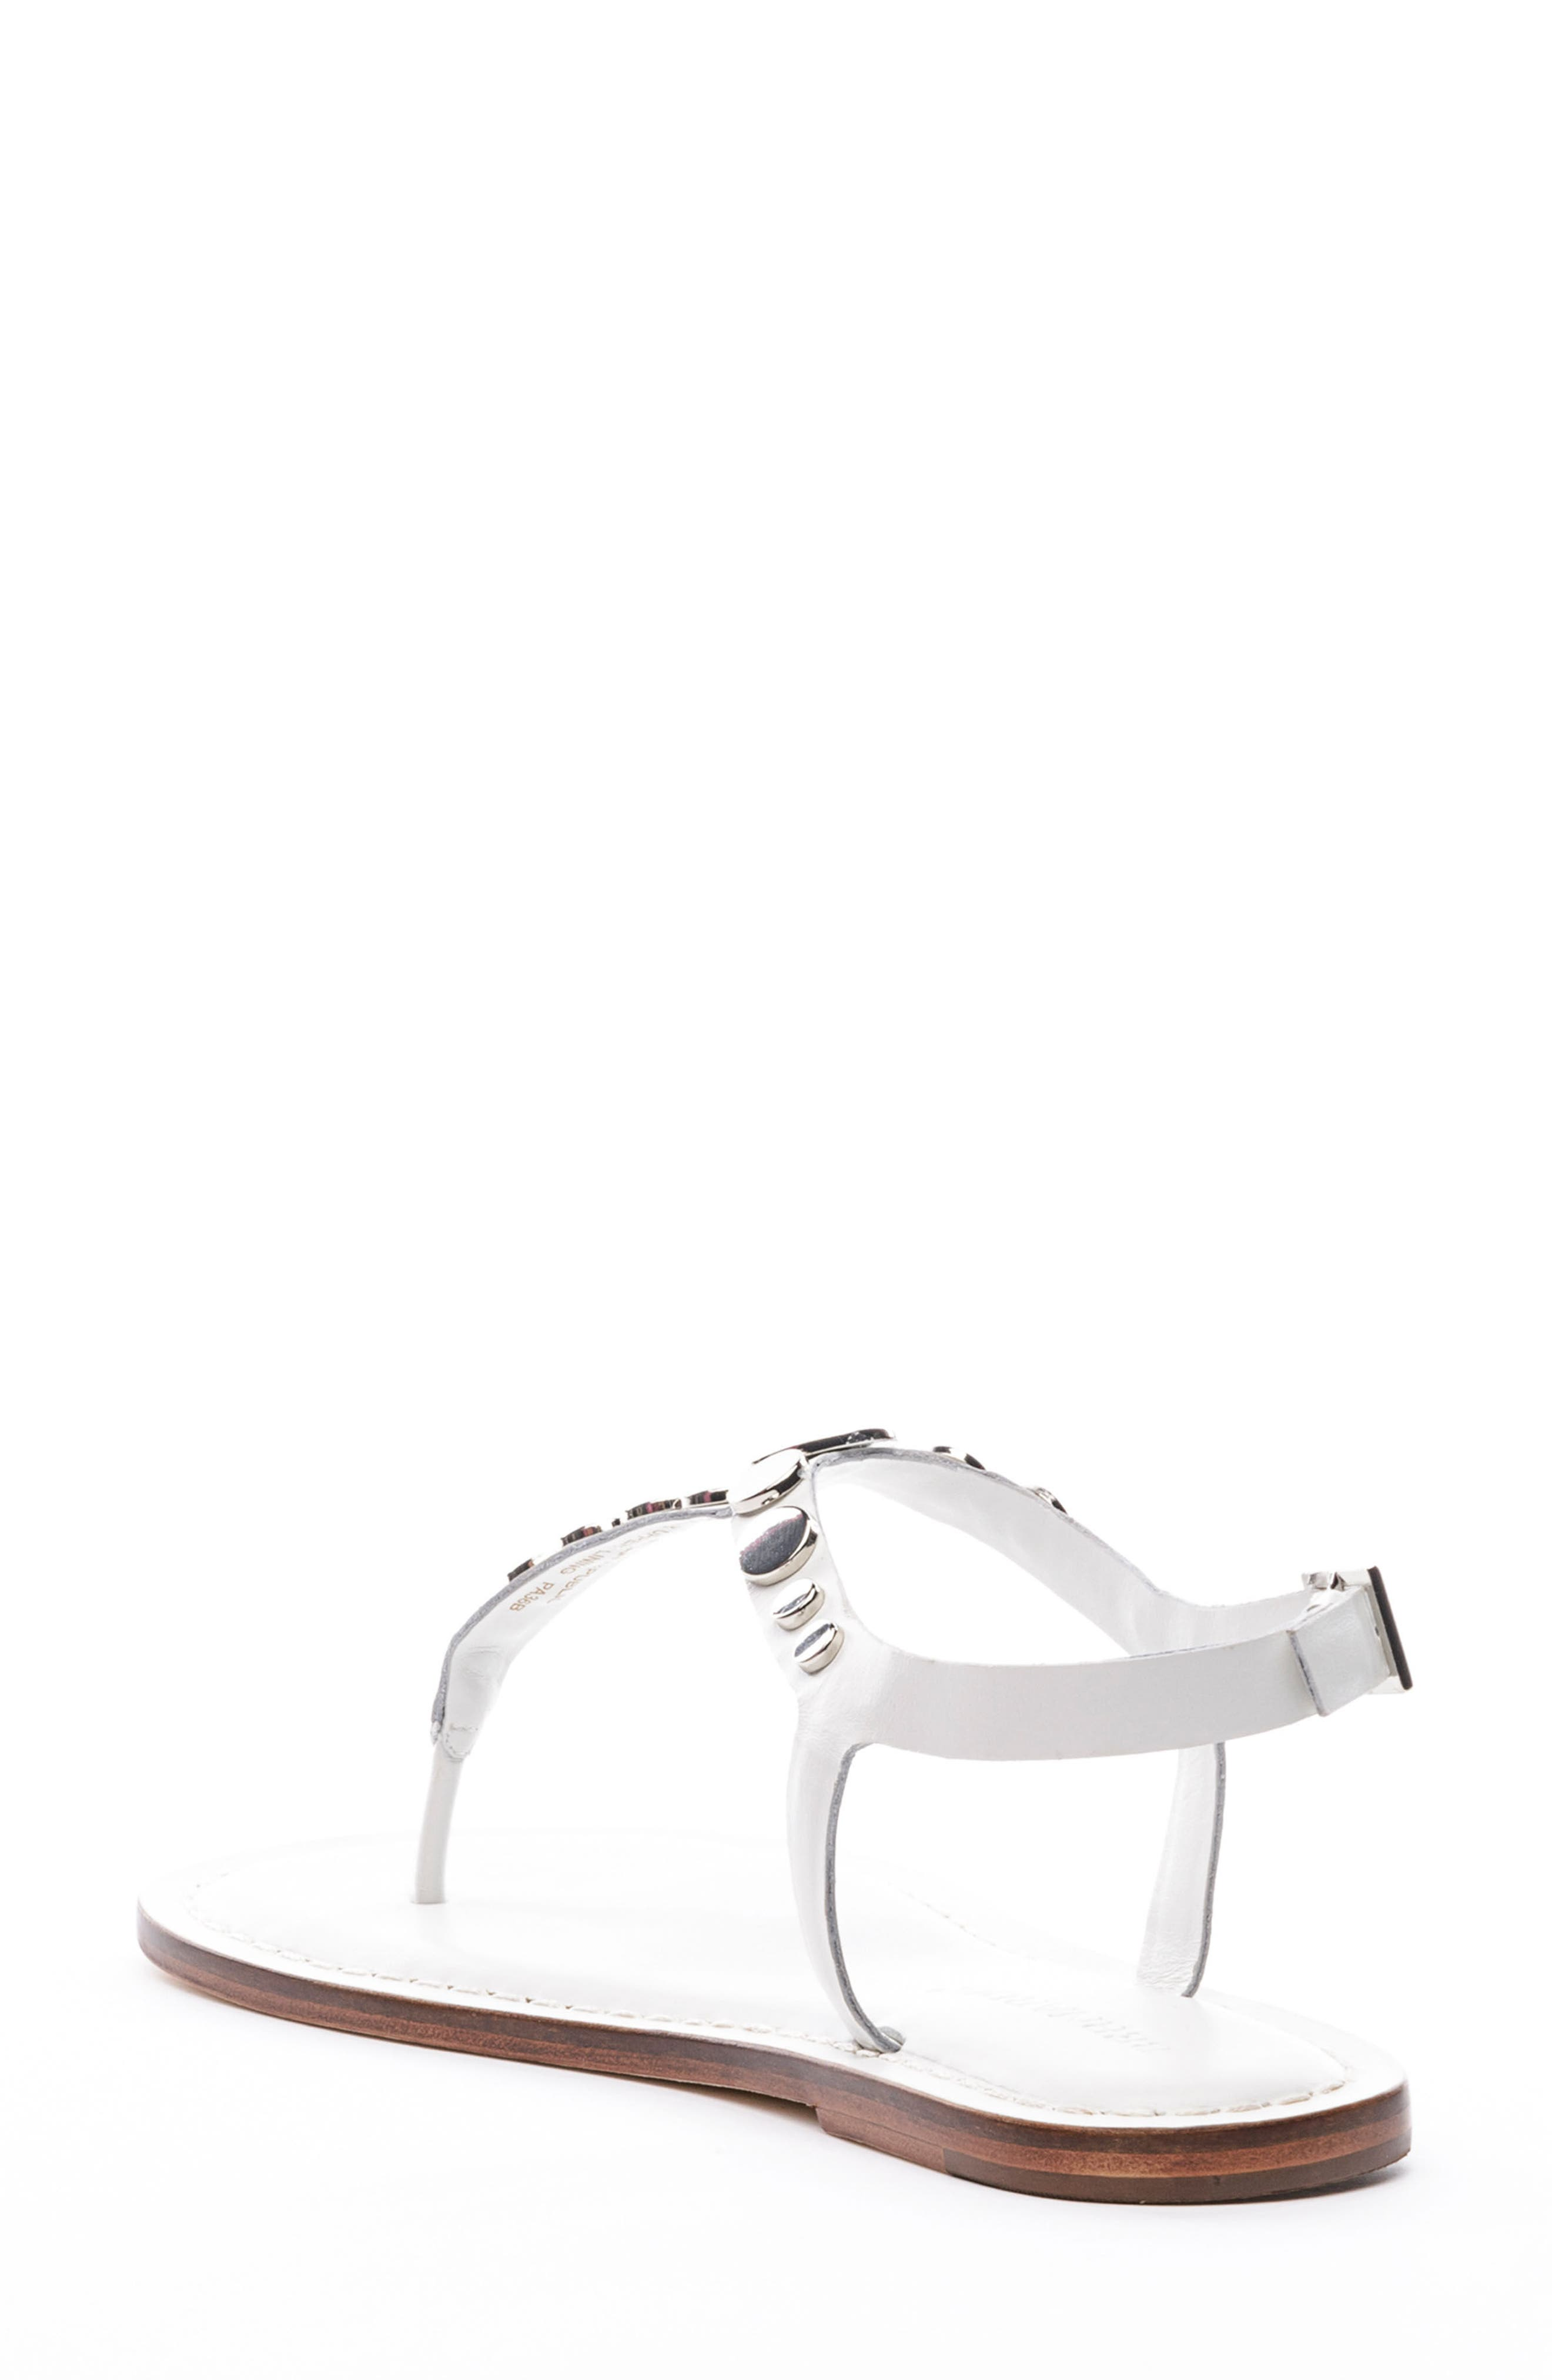 May Sandal,                             Alternate thumbnail 2, color,                             White Leather